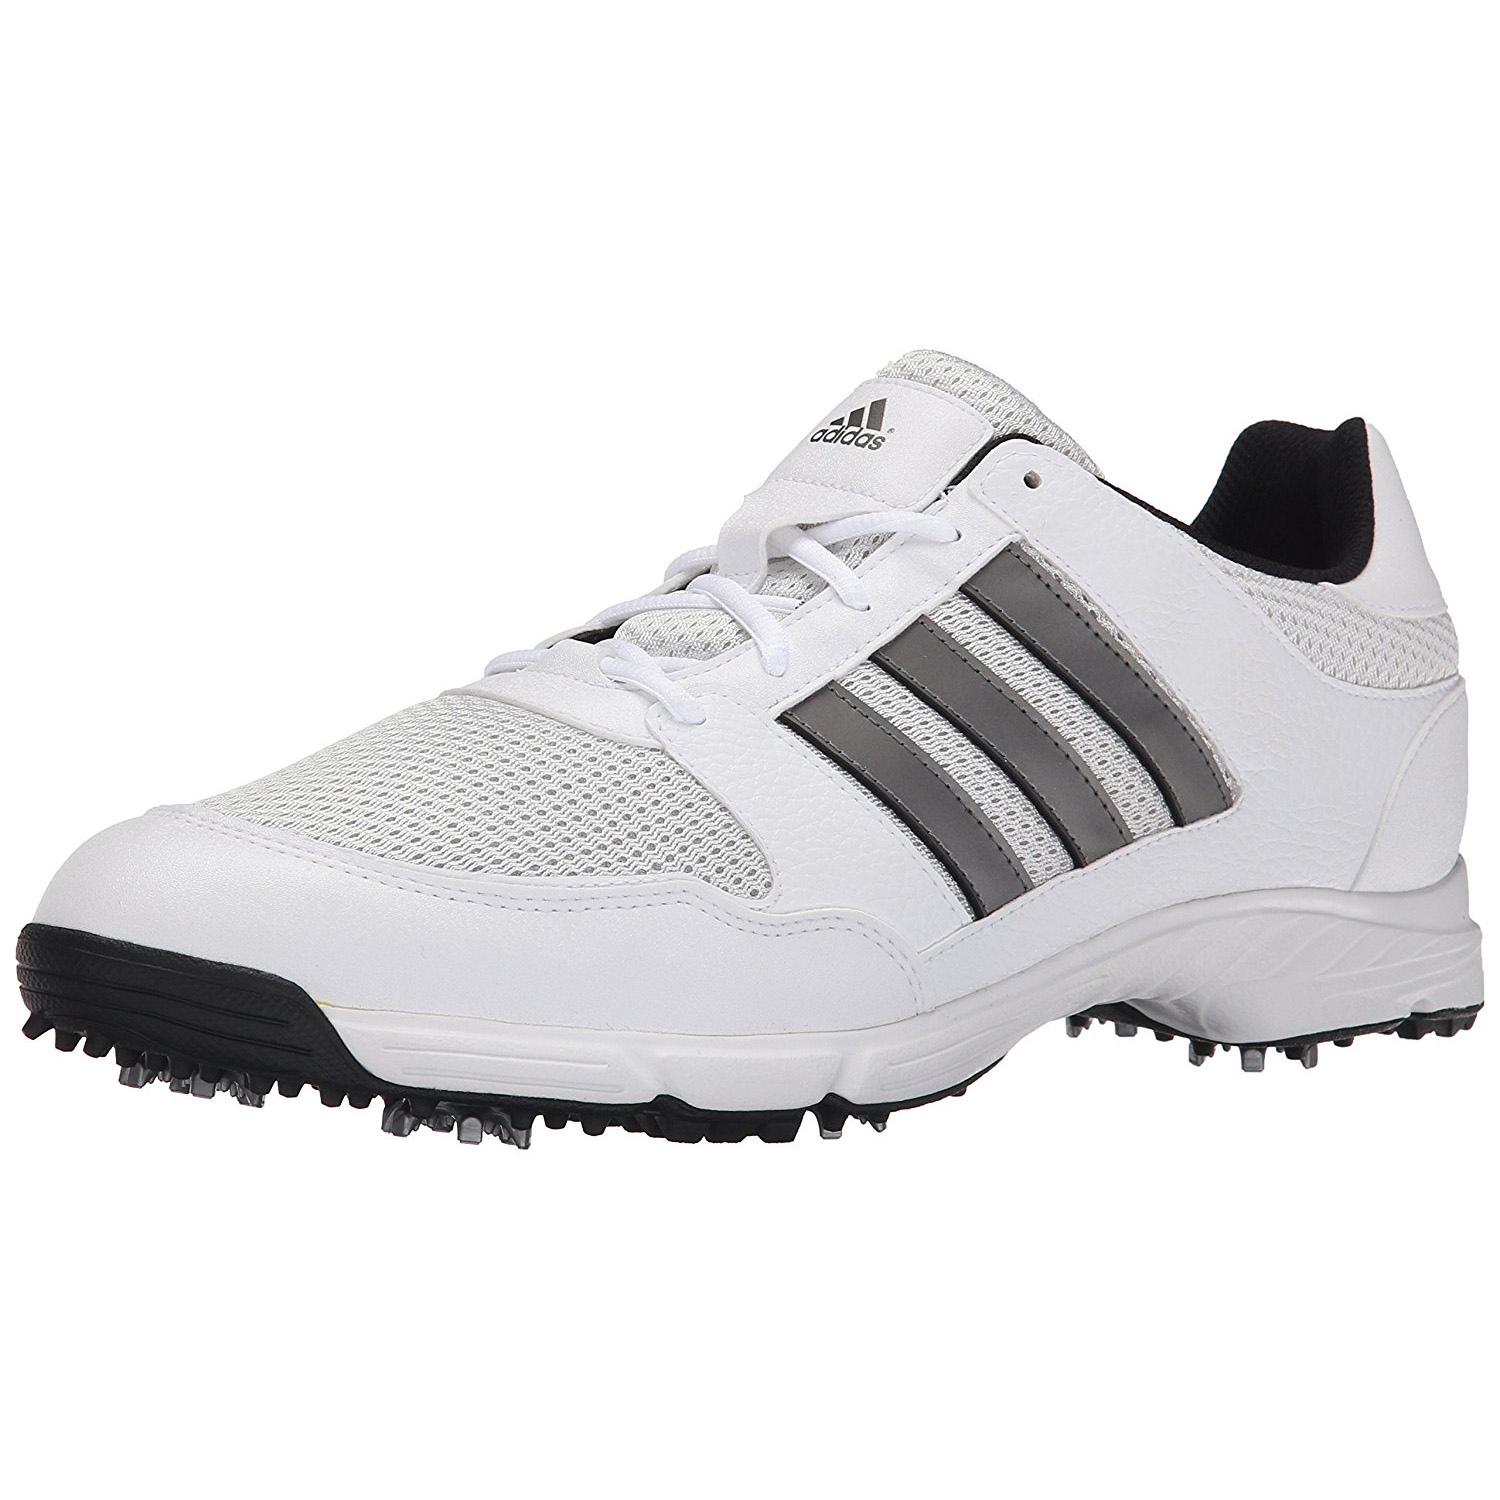 Drive One Golf Shoes